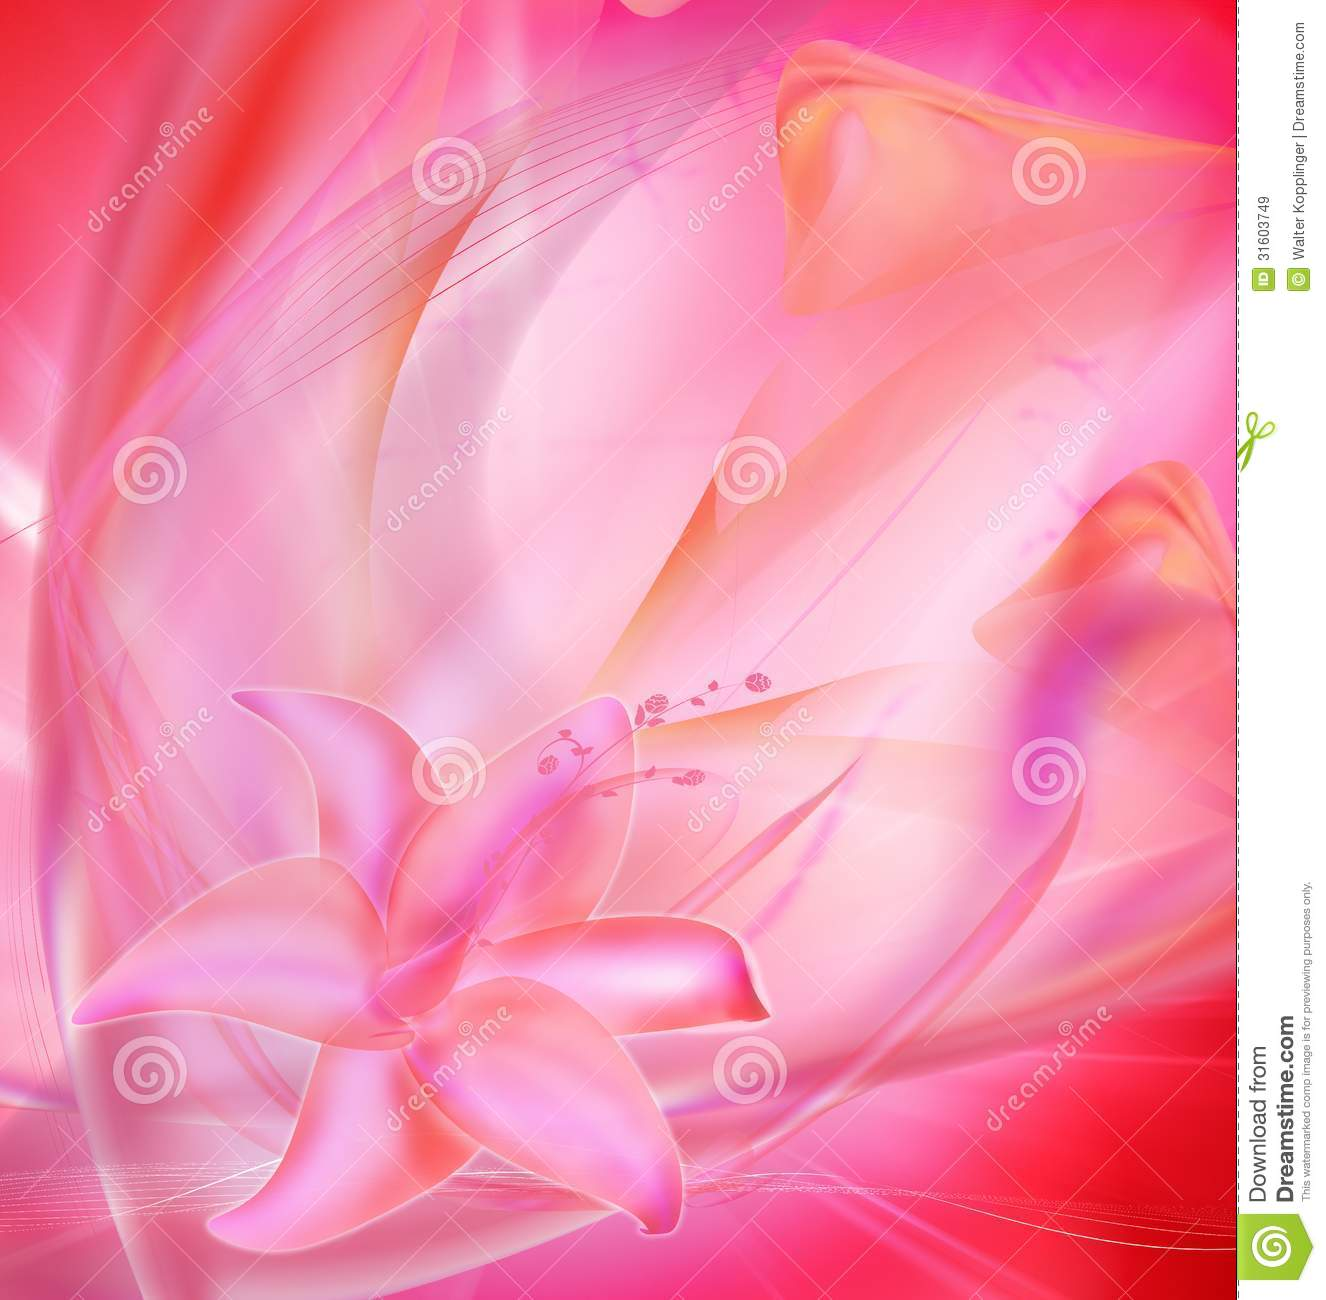 pink flower royalty free stock images image 31603749